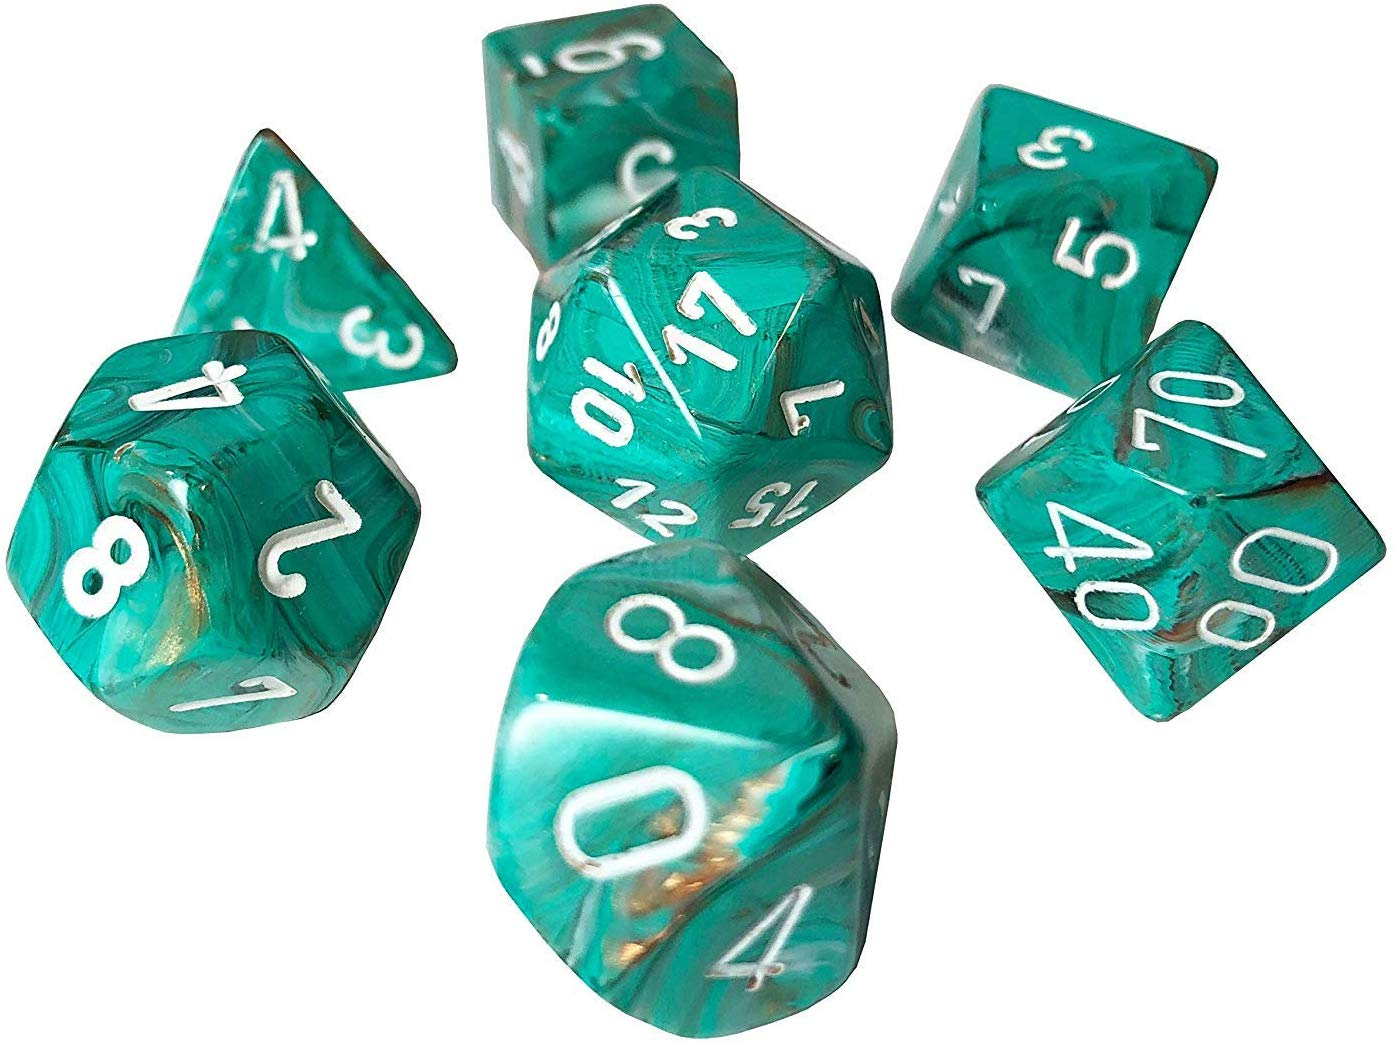 Chessex 27403 - Marble - Polyhedral 7 Die Set - Oxi-Copper/white